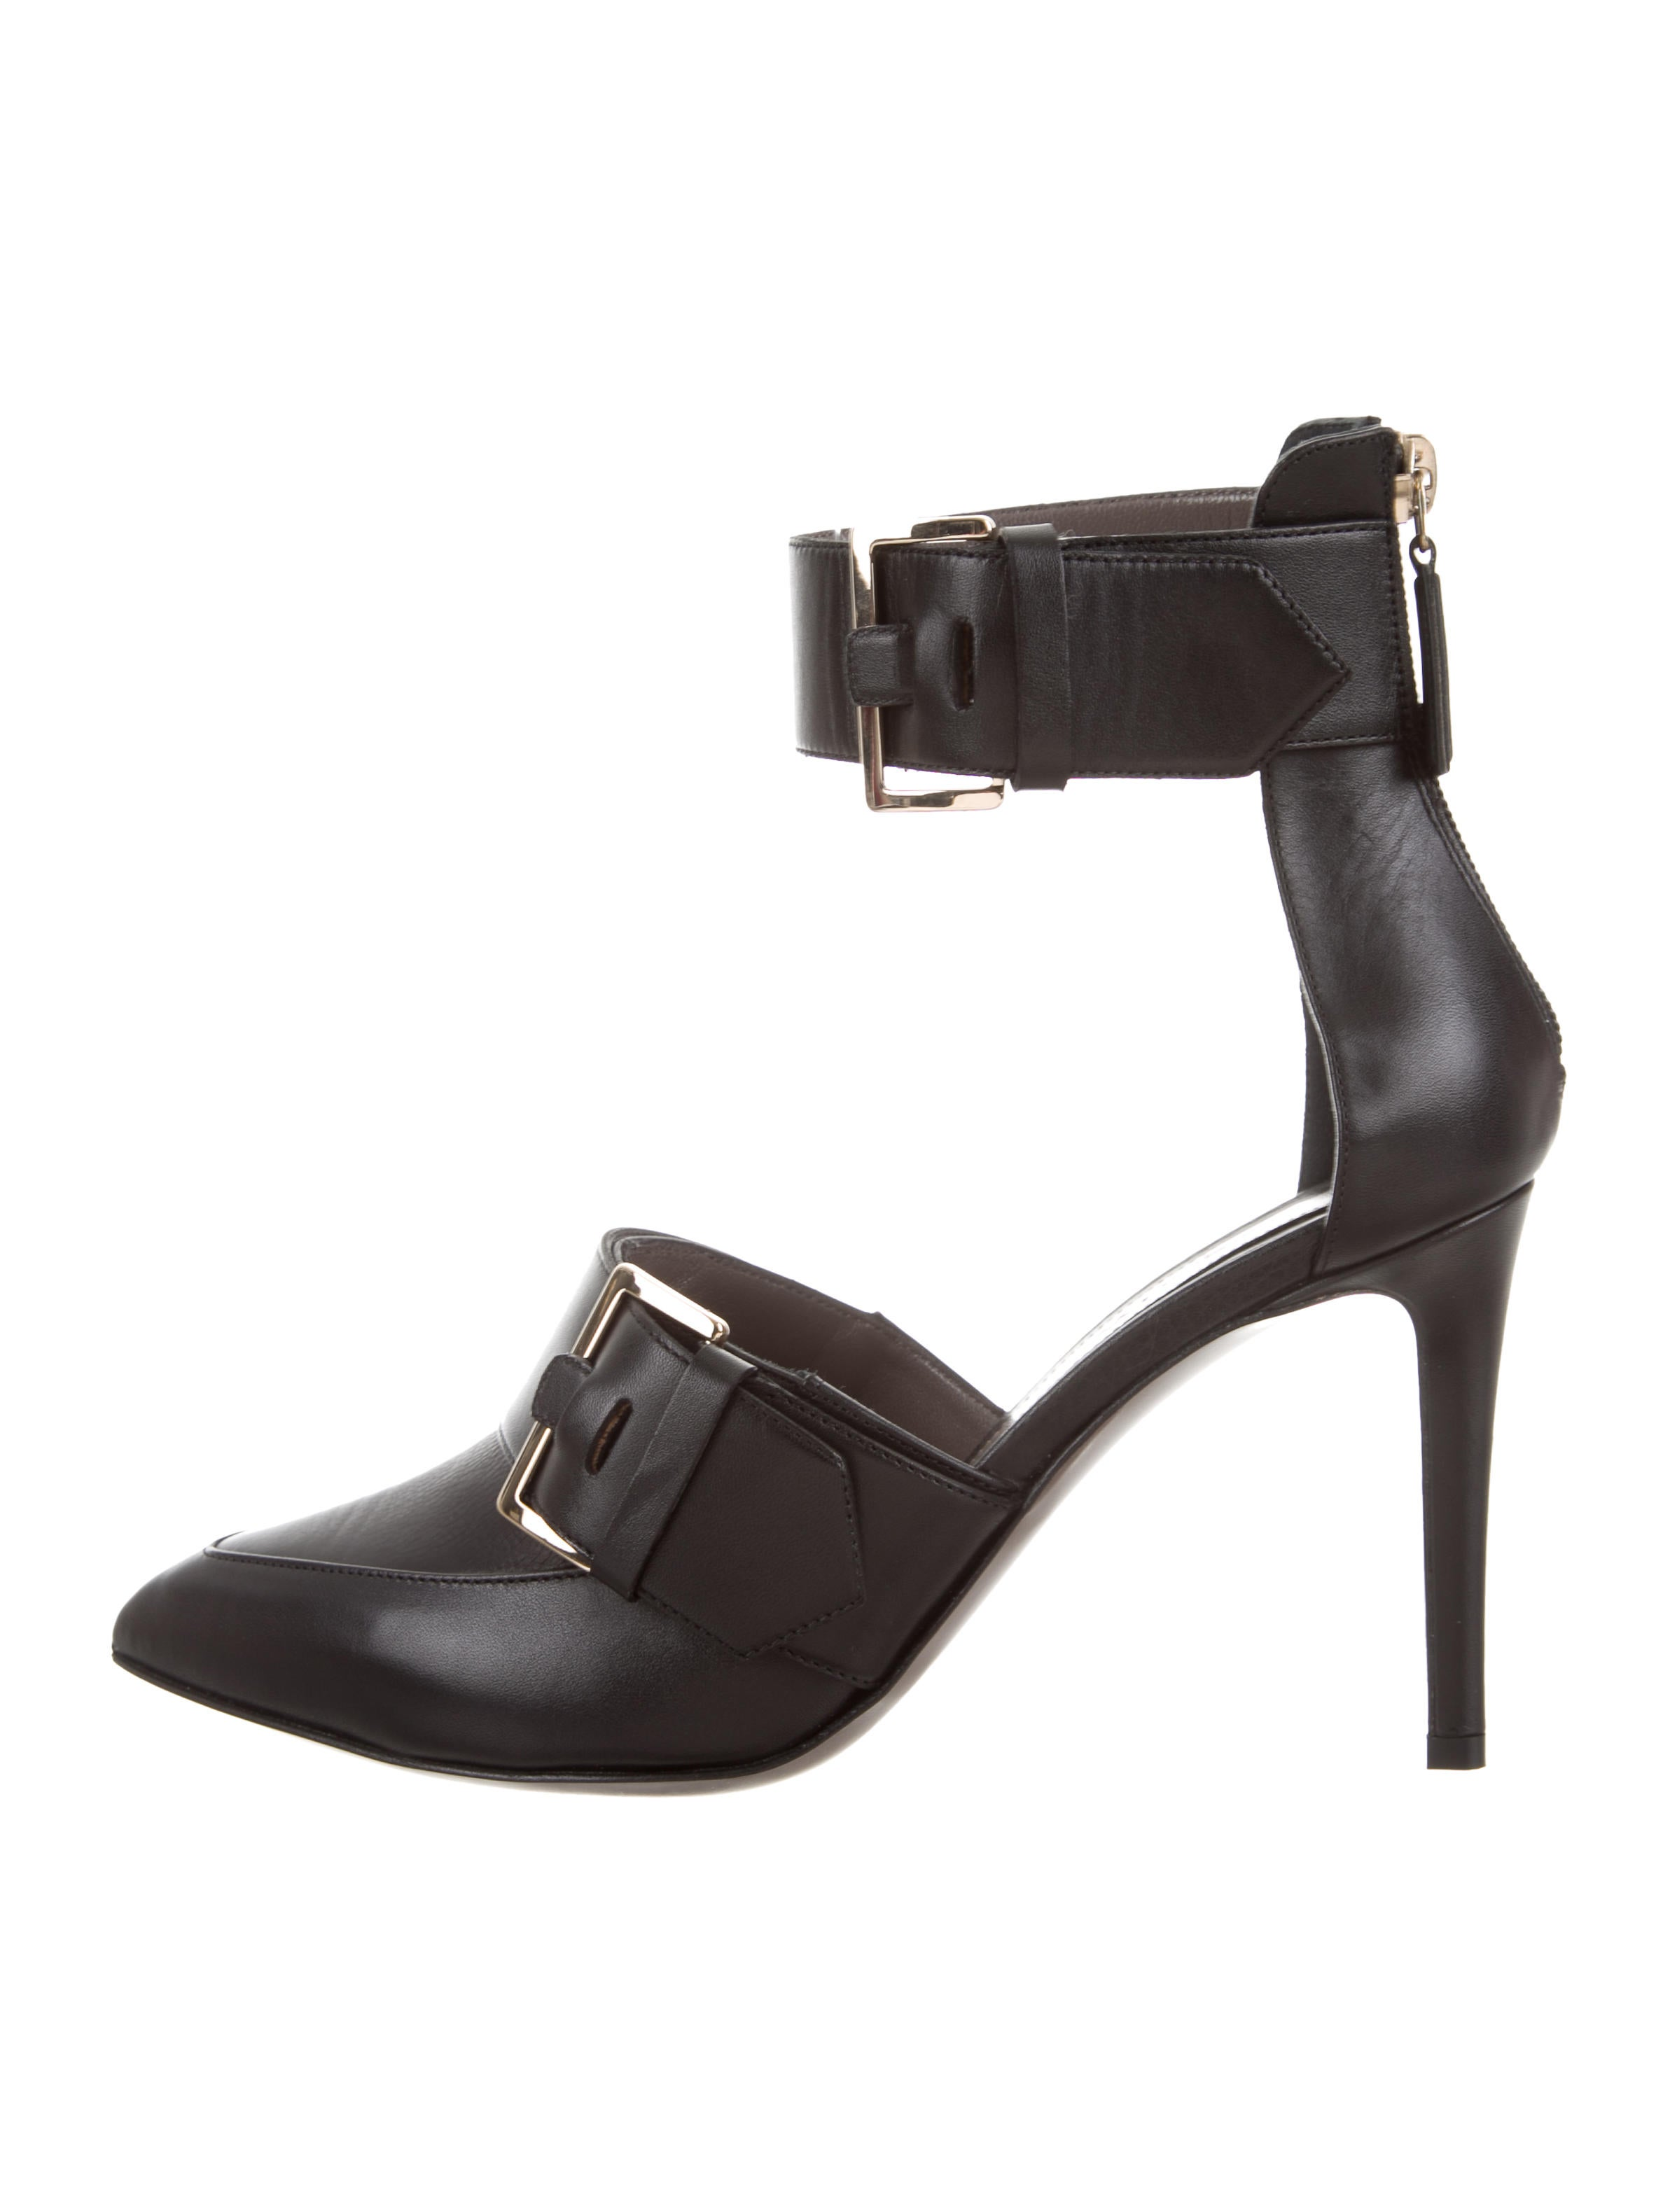 Jason Wu Pointed-Toe Ankle Strap Pumps cheap buy authentic high quality online outlet original fbQOe1IoA